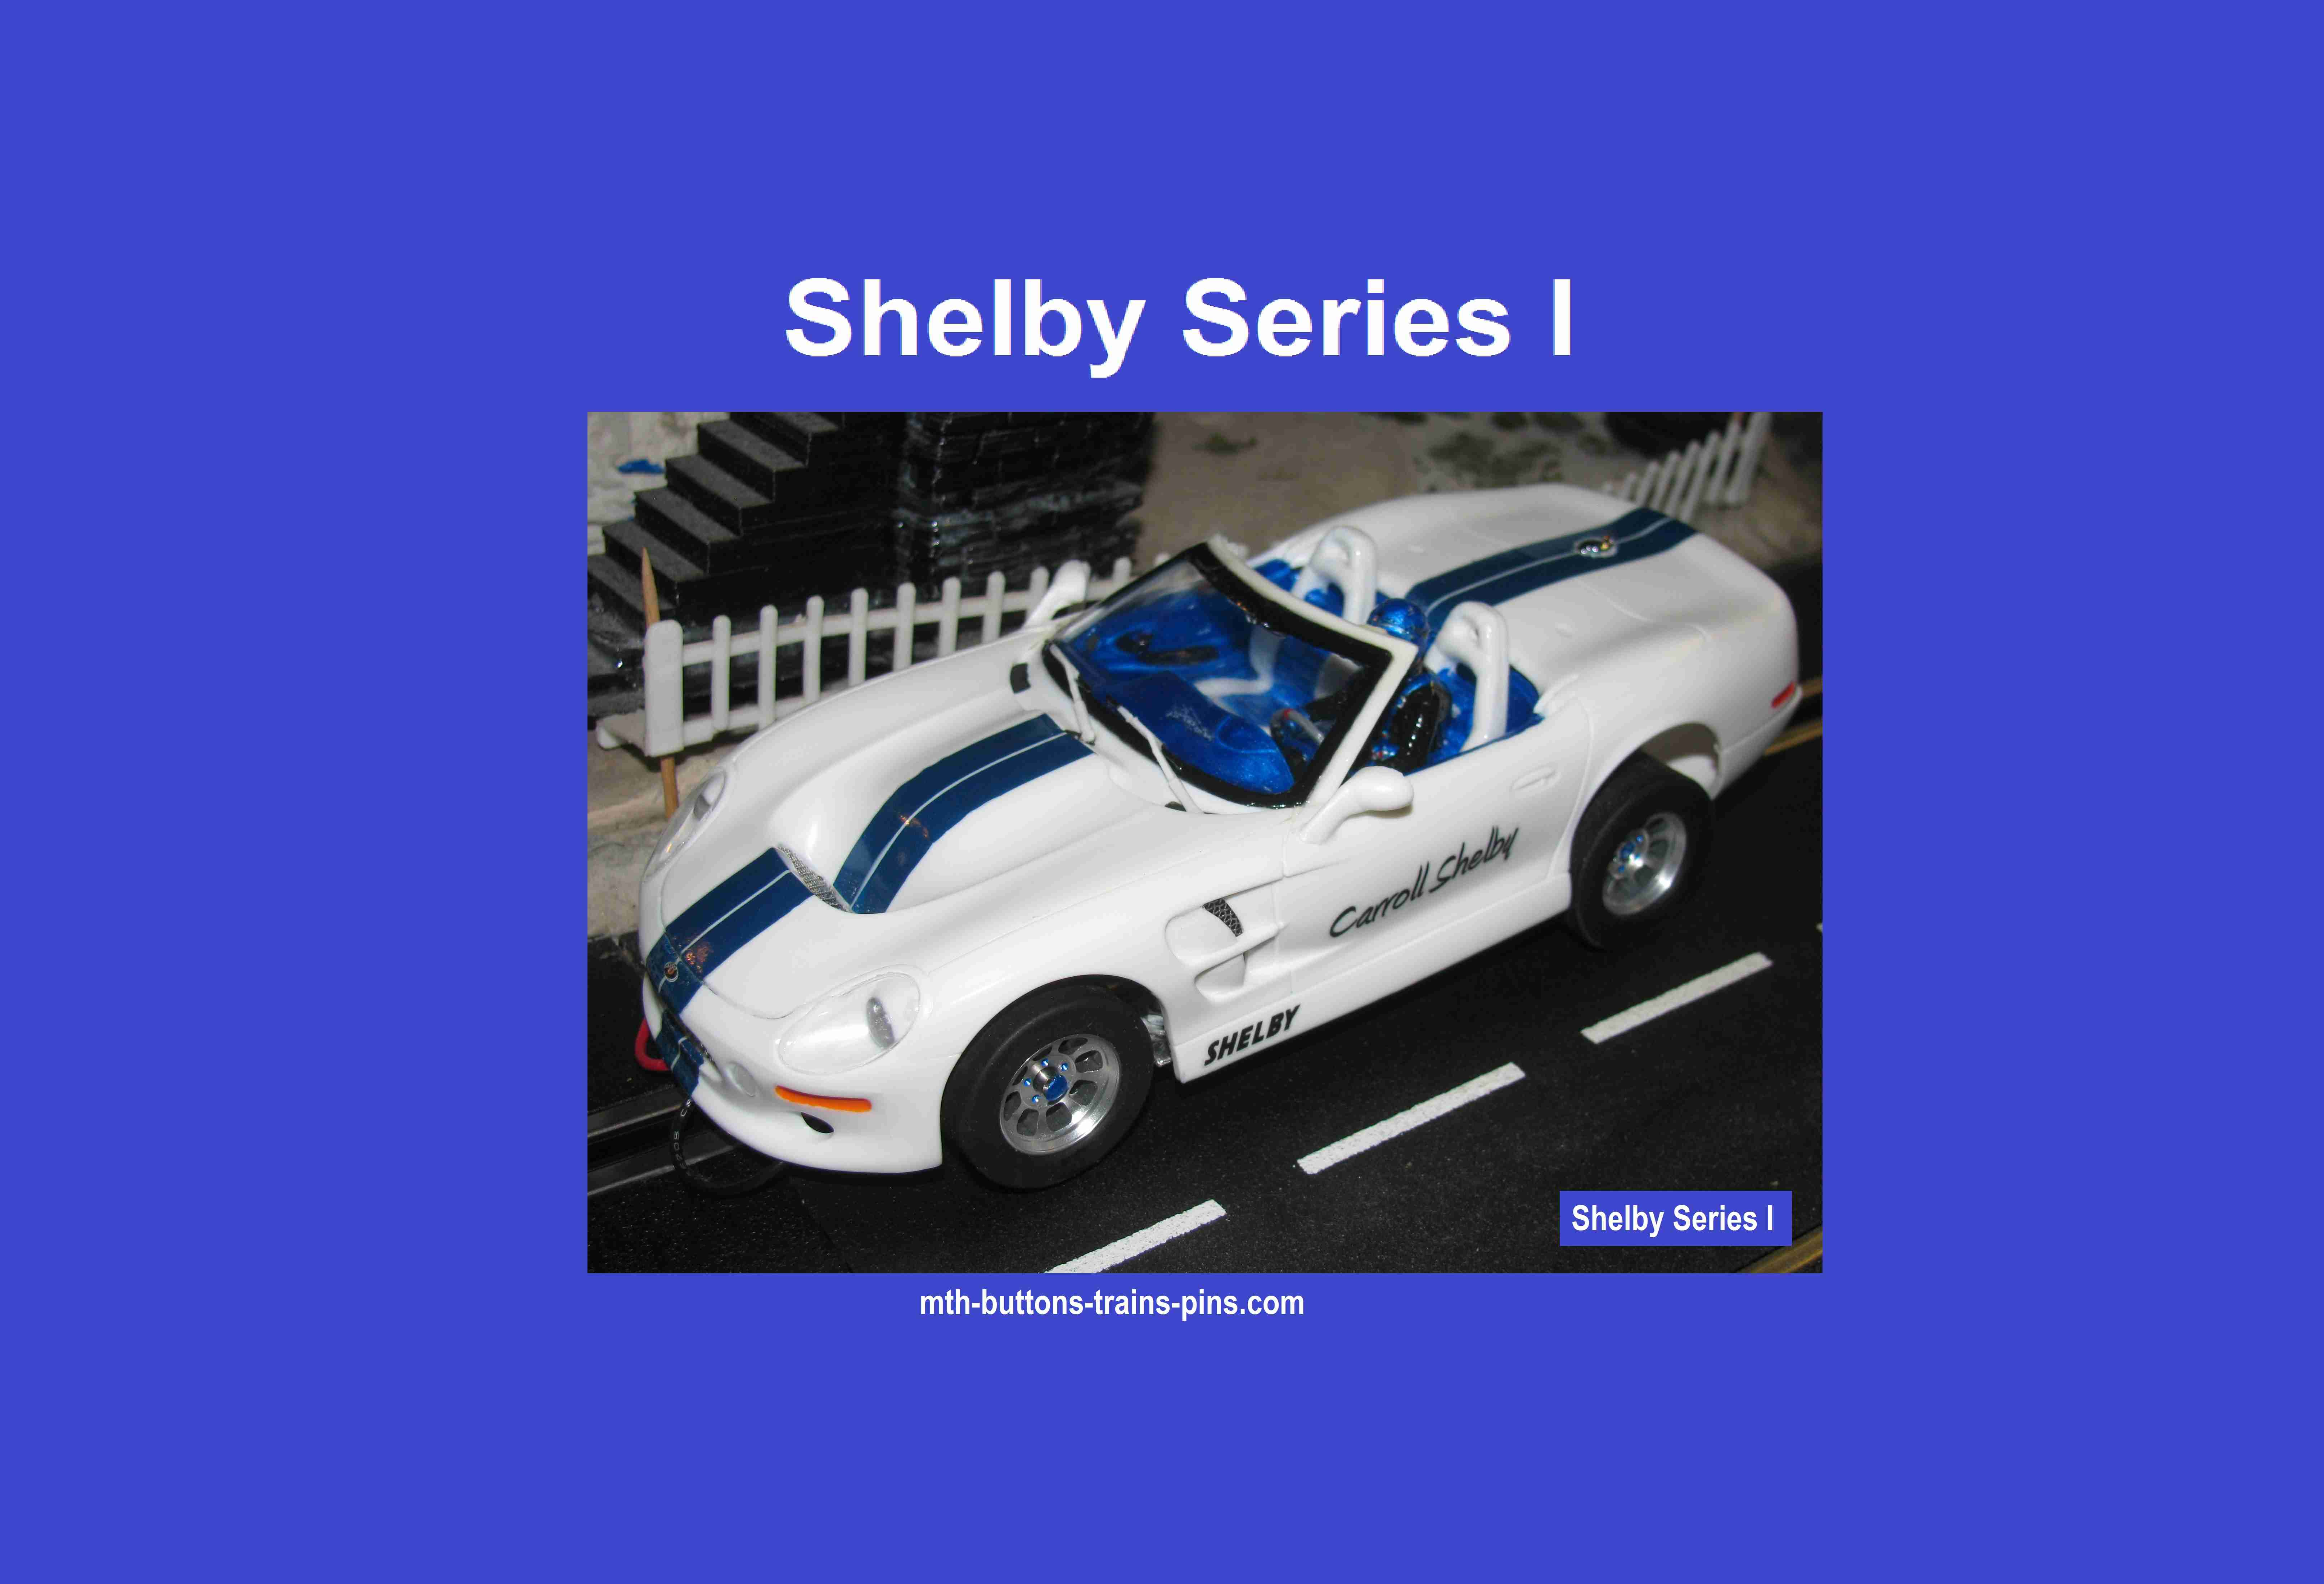 *SALE, Normally $189 SAVE $30* Monogram 1998 Shelby Series I 1/24 Scale Slot Car *SALE*